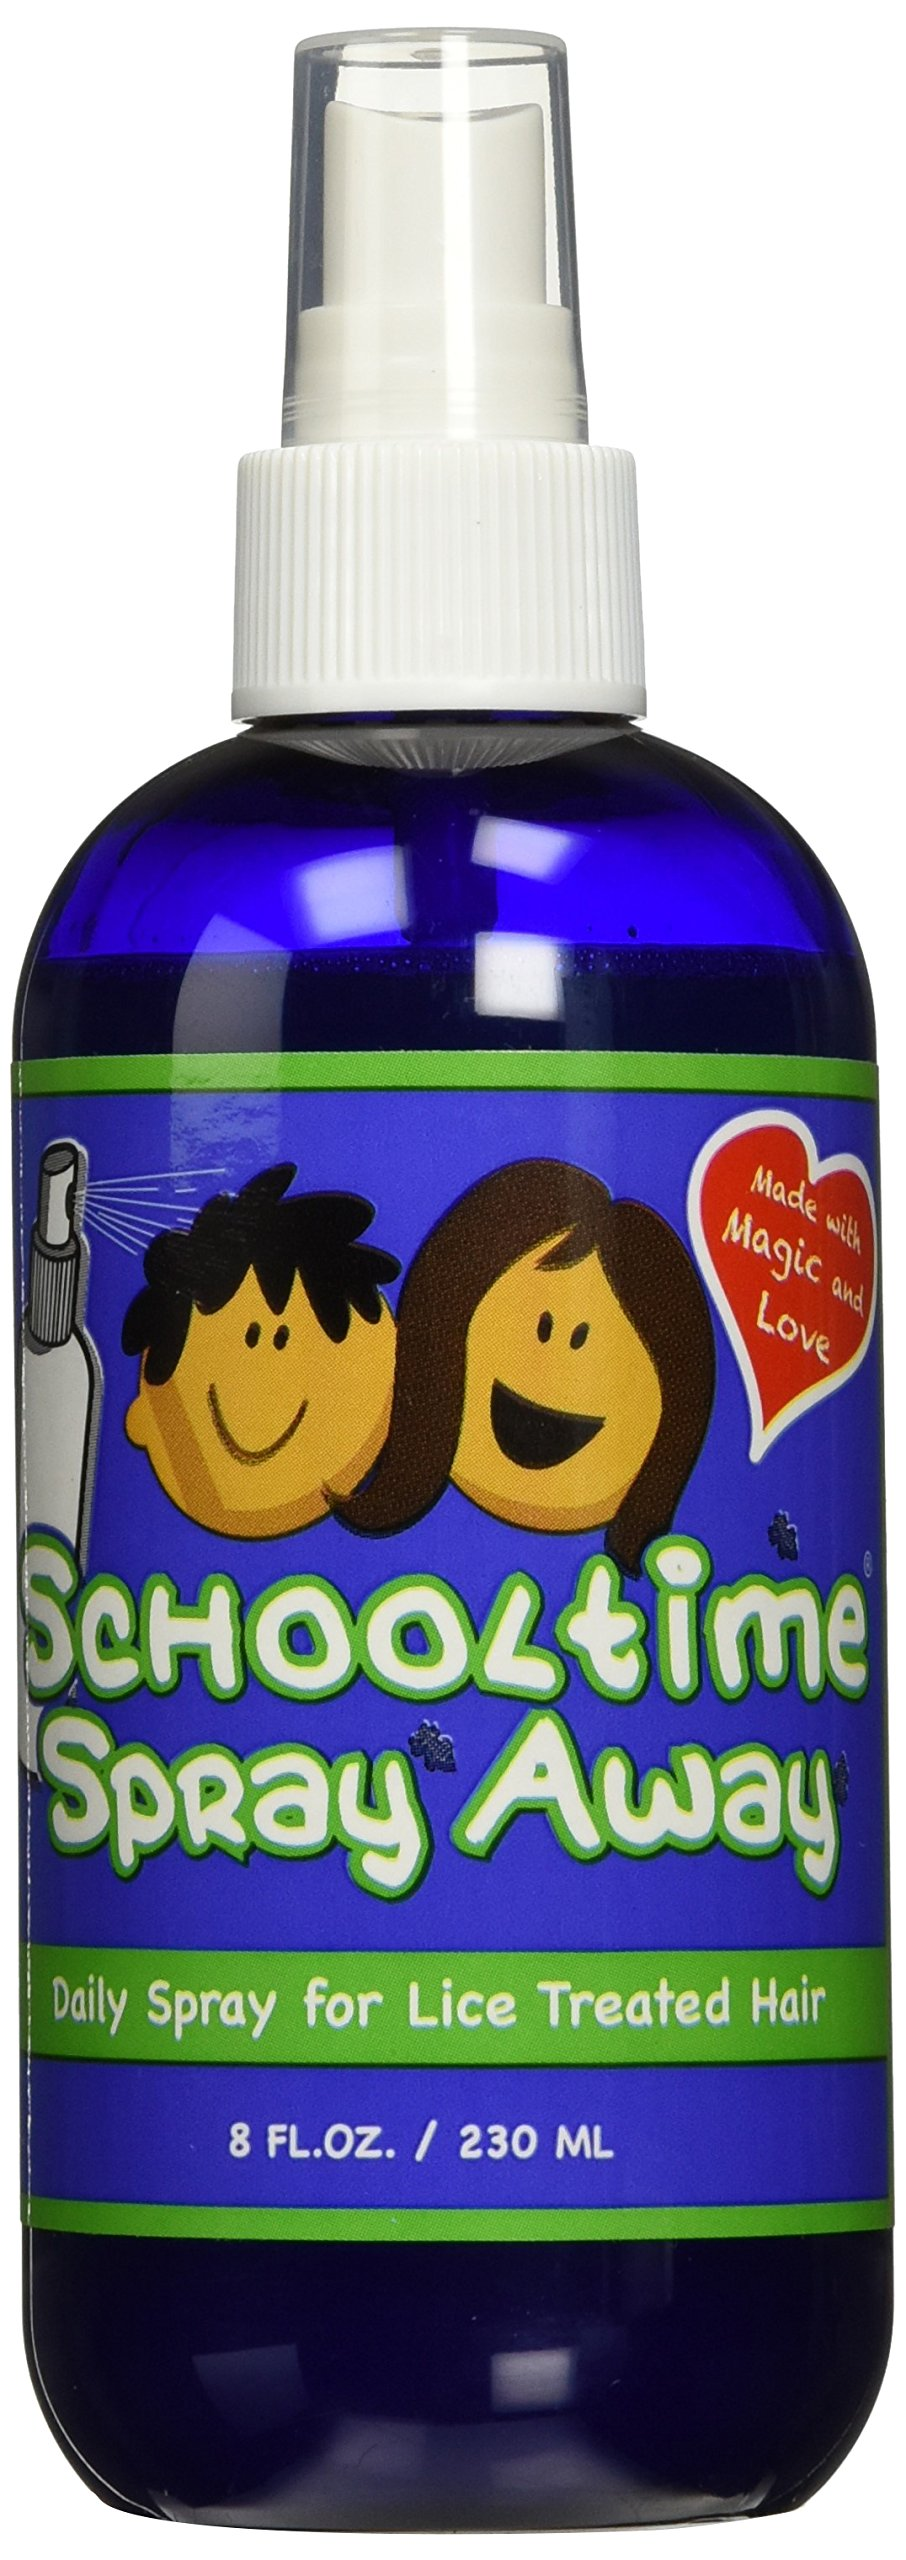 Schooltime Spray Away After Treatment Spray